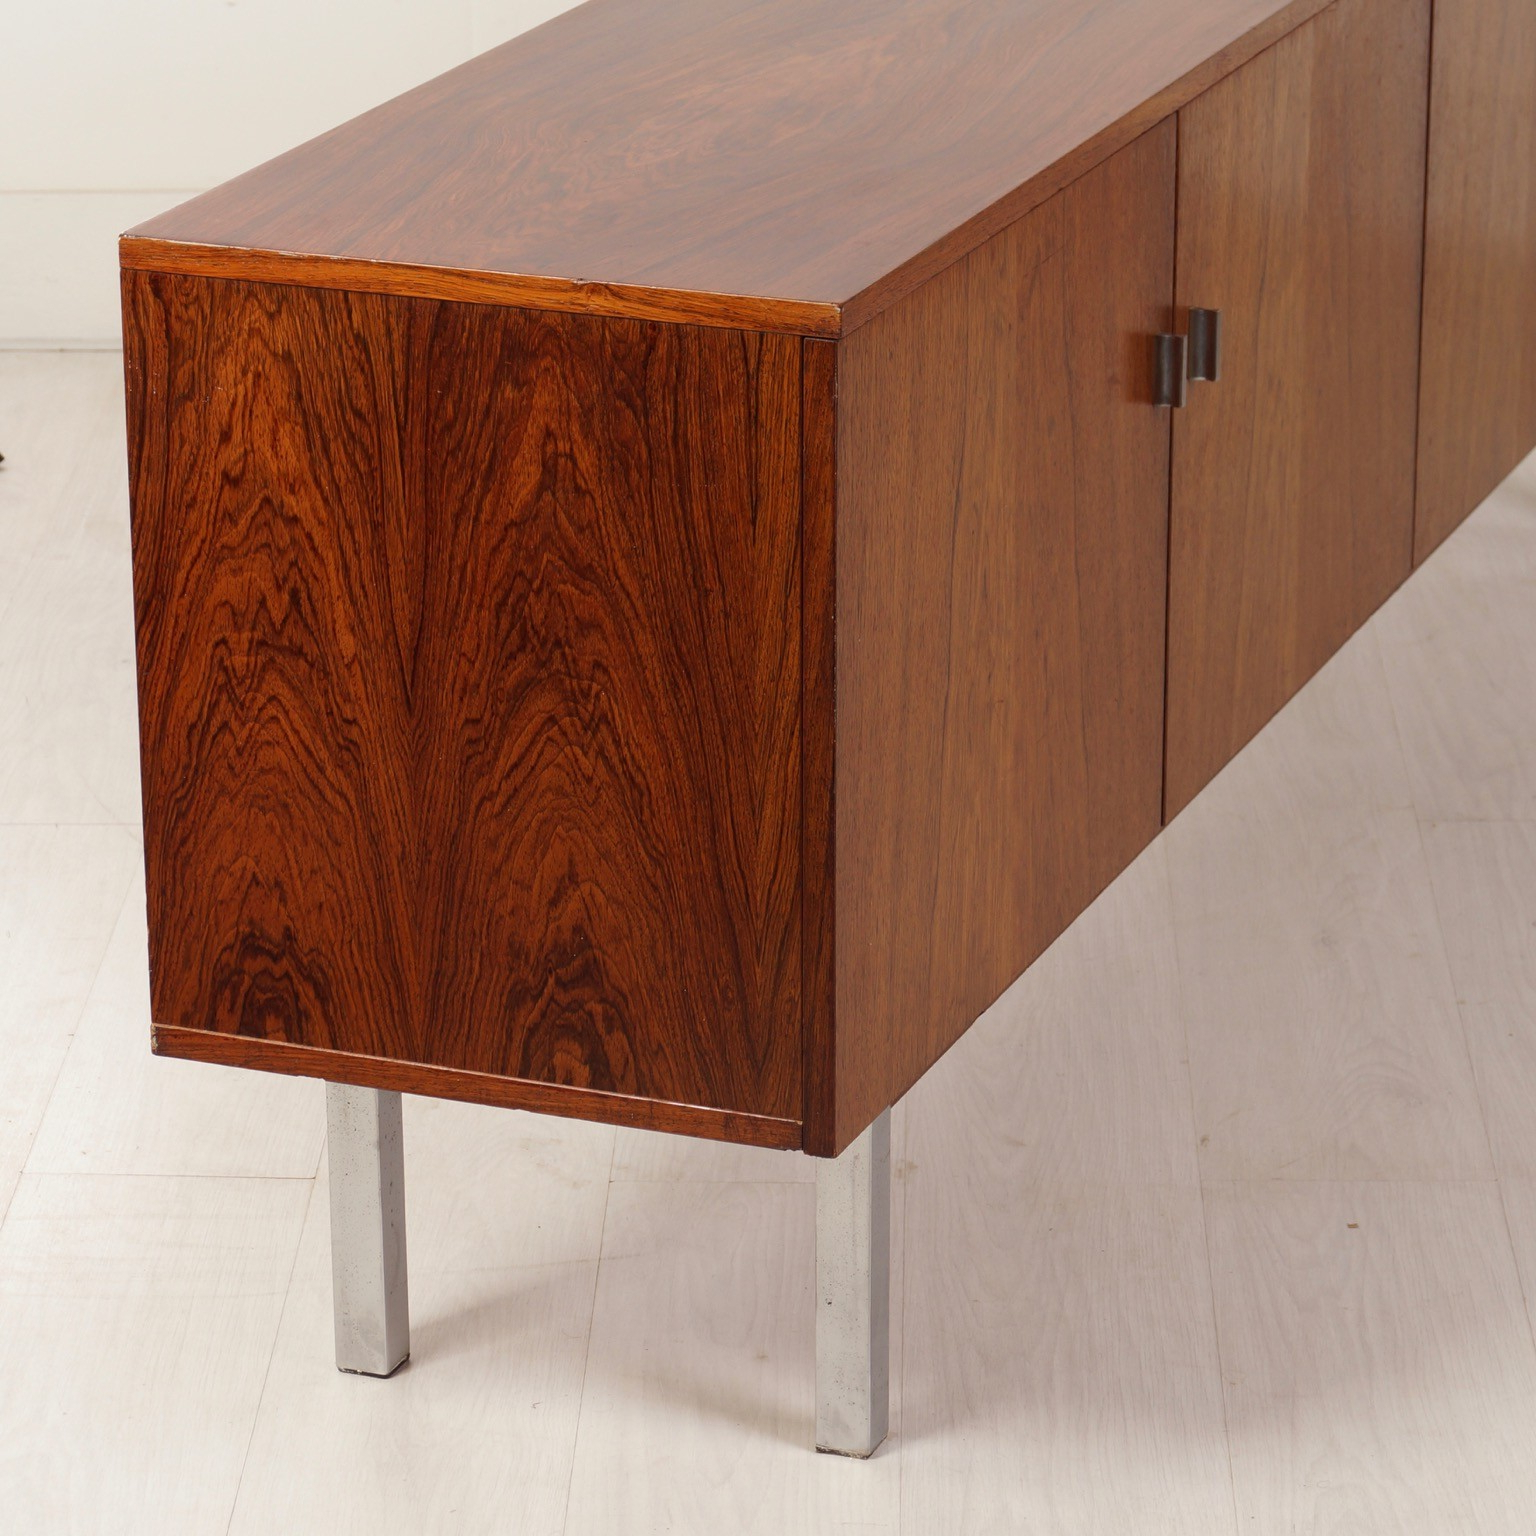 Vintage Sideboard Made Of Rosewood, 1960s – Ztijl Design With 2018 Vintage Brown Textured Sideboards (View 3 of 20)